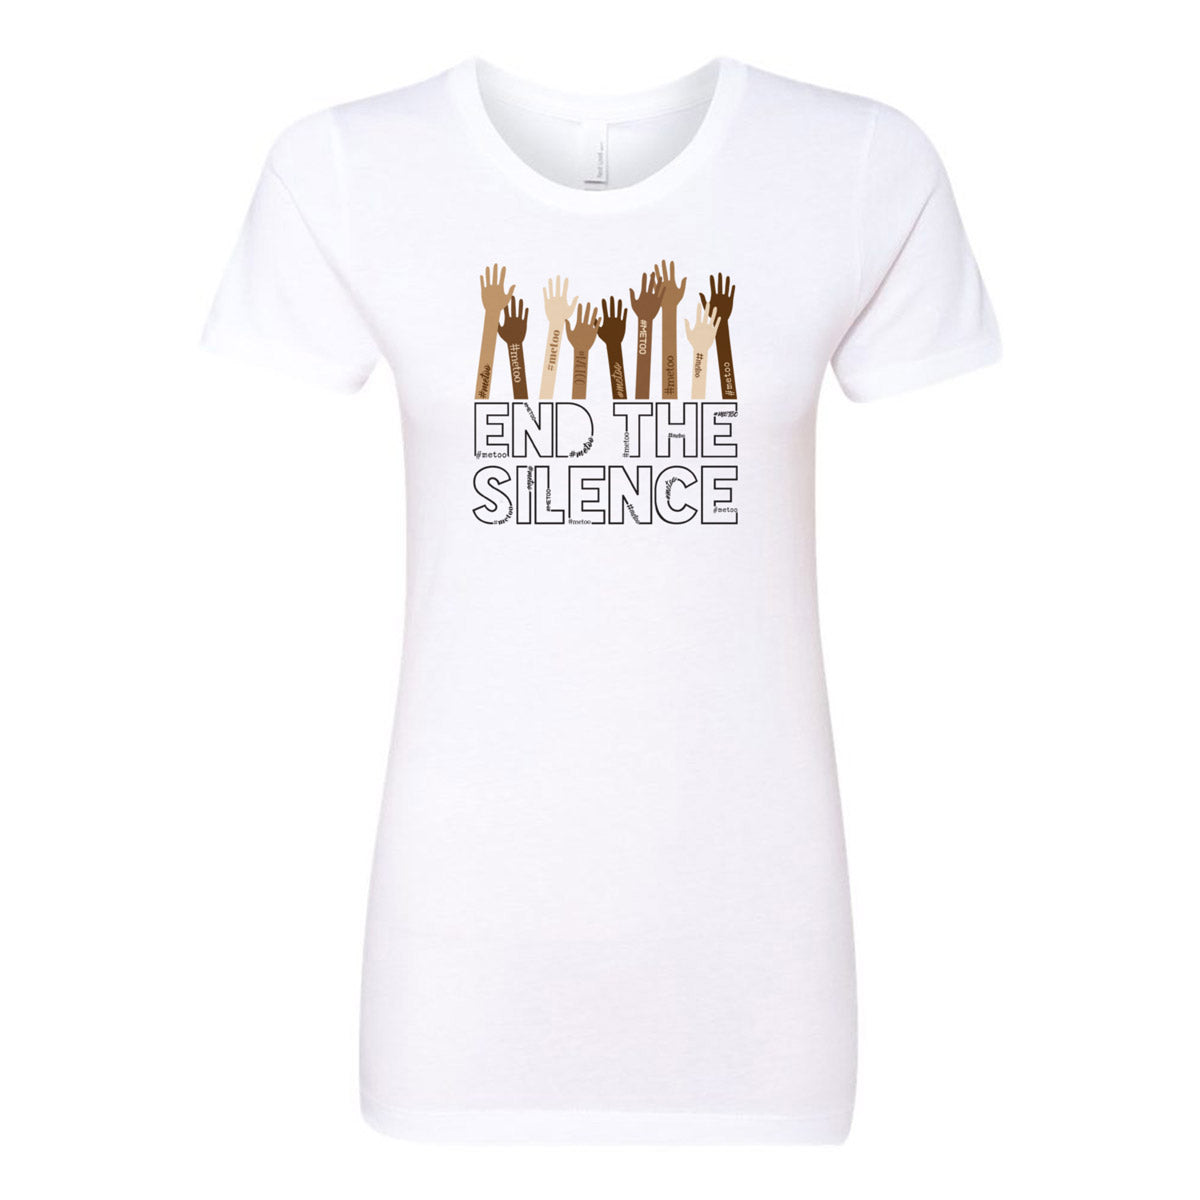 End the Silence - #MeToo Movement Ladies' Boyfriend T-Shirt - pipercleo.com